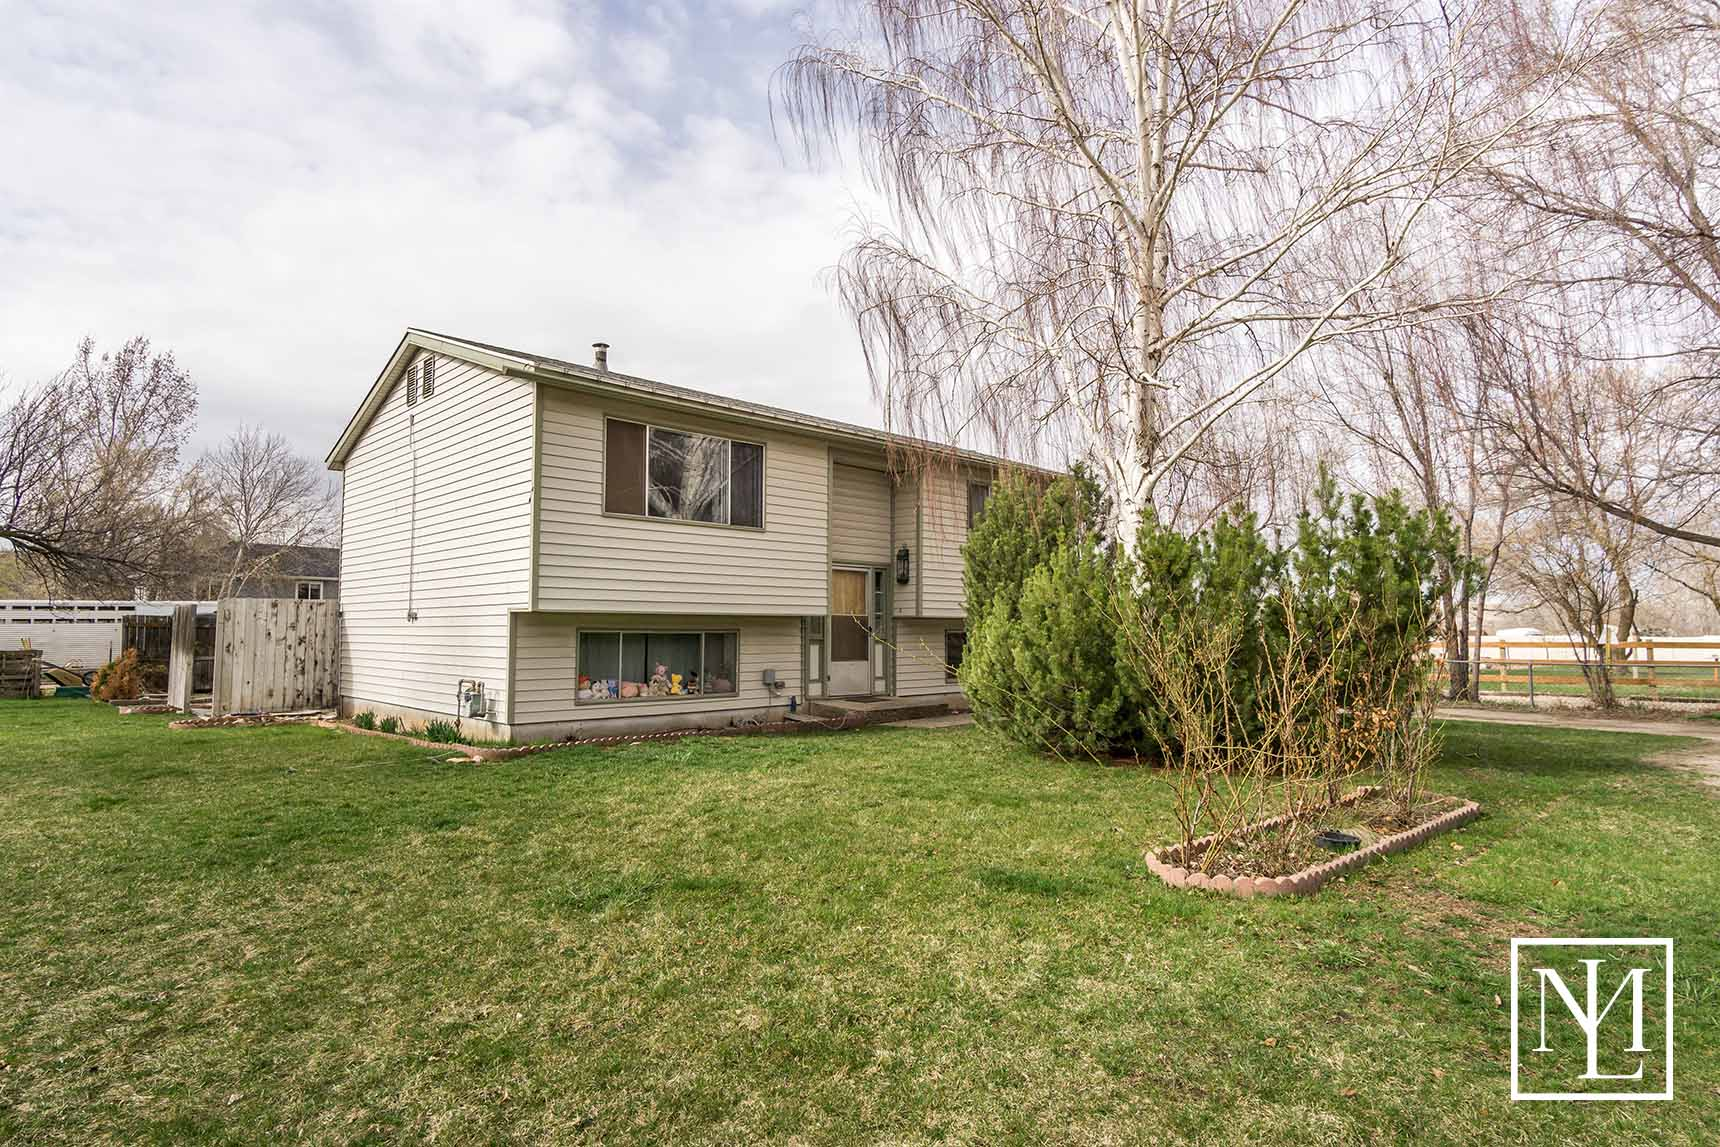 1593 E 6600 S Uintah UT 84405 02 Uintah Utah Real Estate